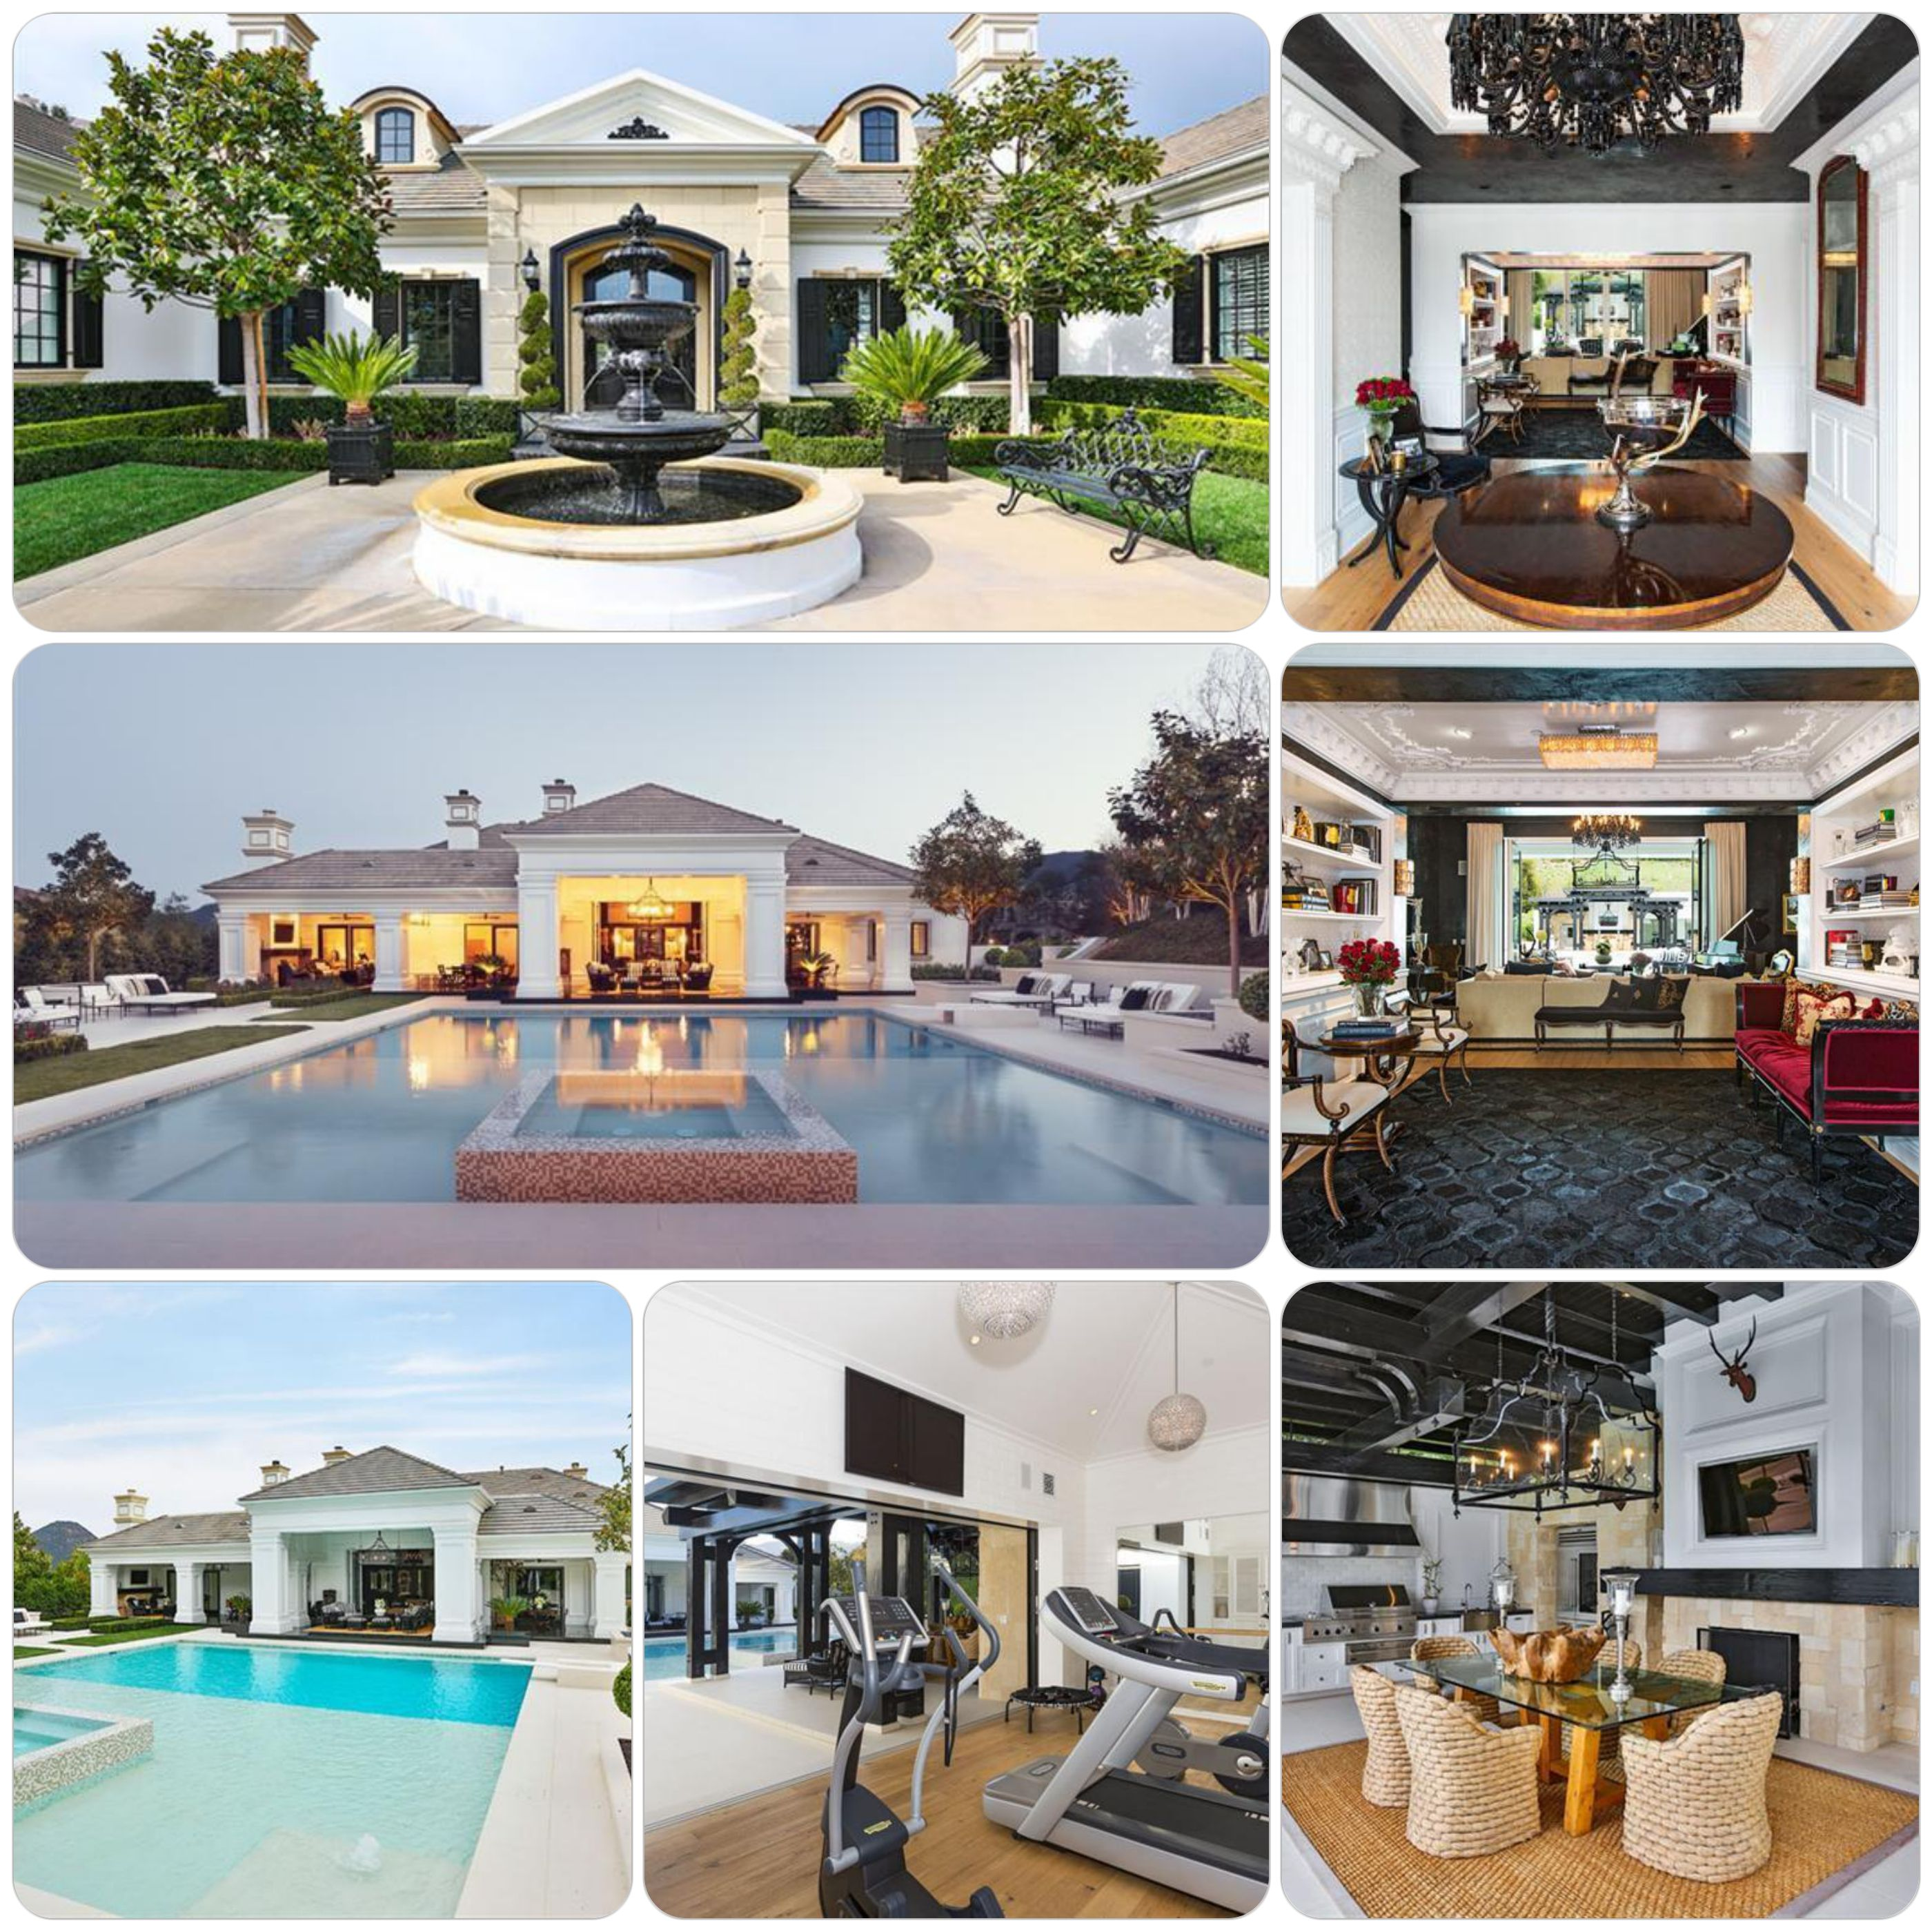 #NHL Icon Wayne Gretzkyu0027s Home At The Sherwood Country Club Features A  Magnificent #pool